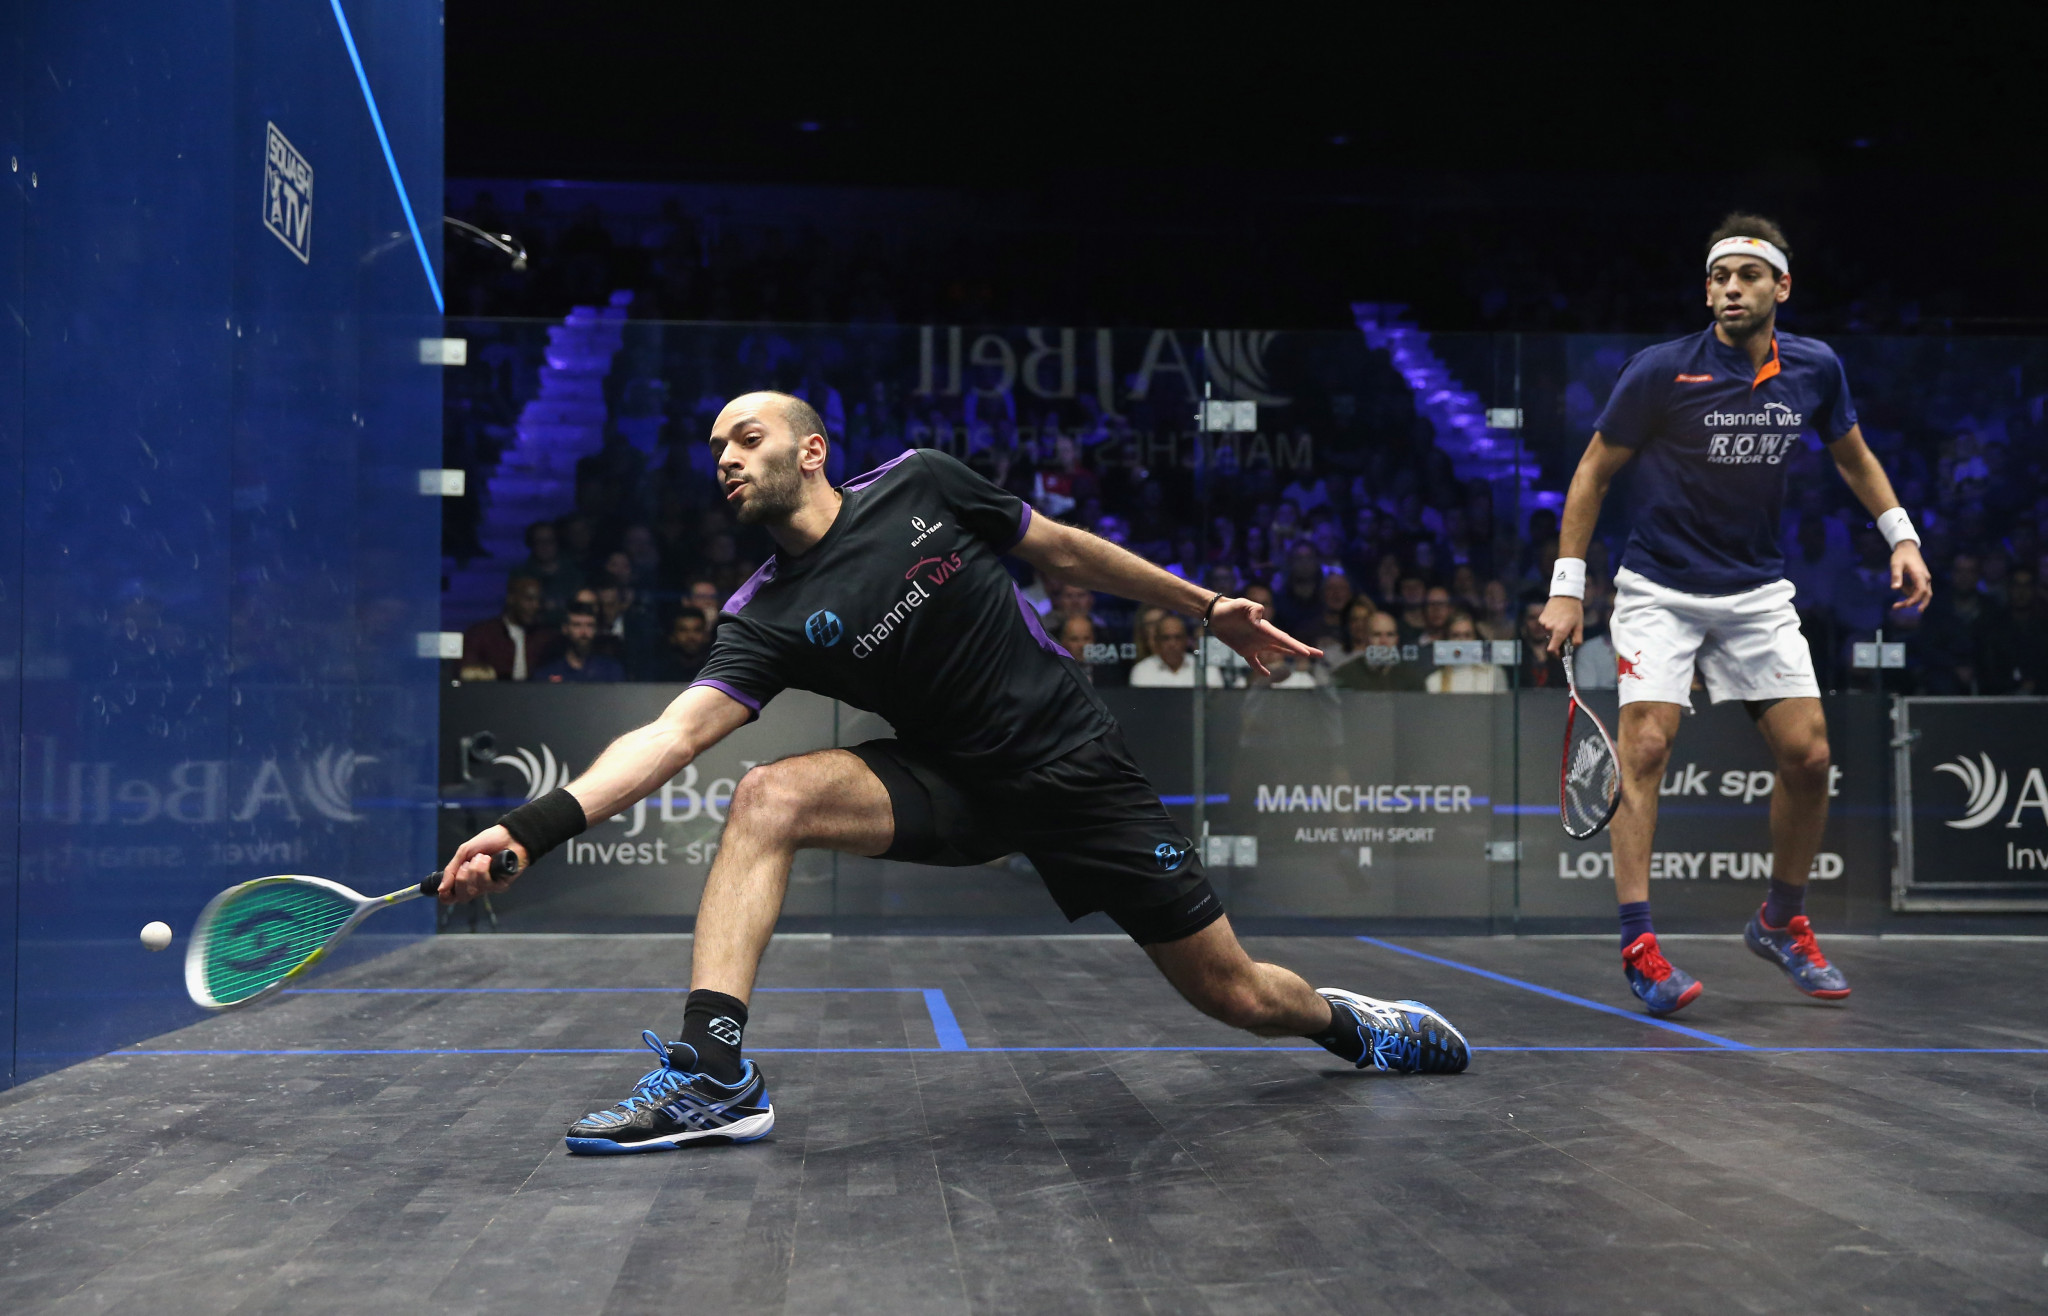 Marwan ElShorbagy rises into top three of men's PSA world rankings